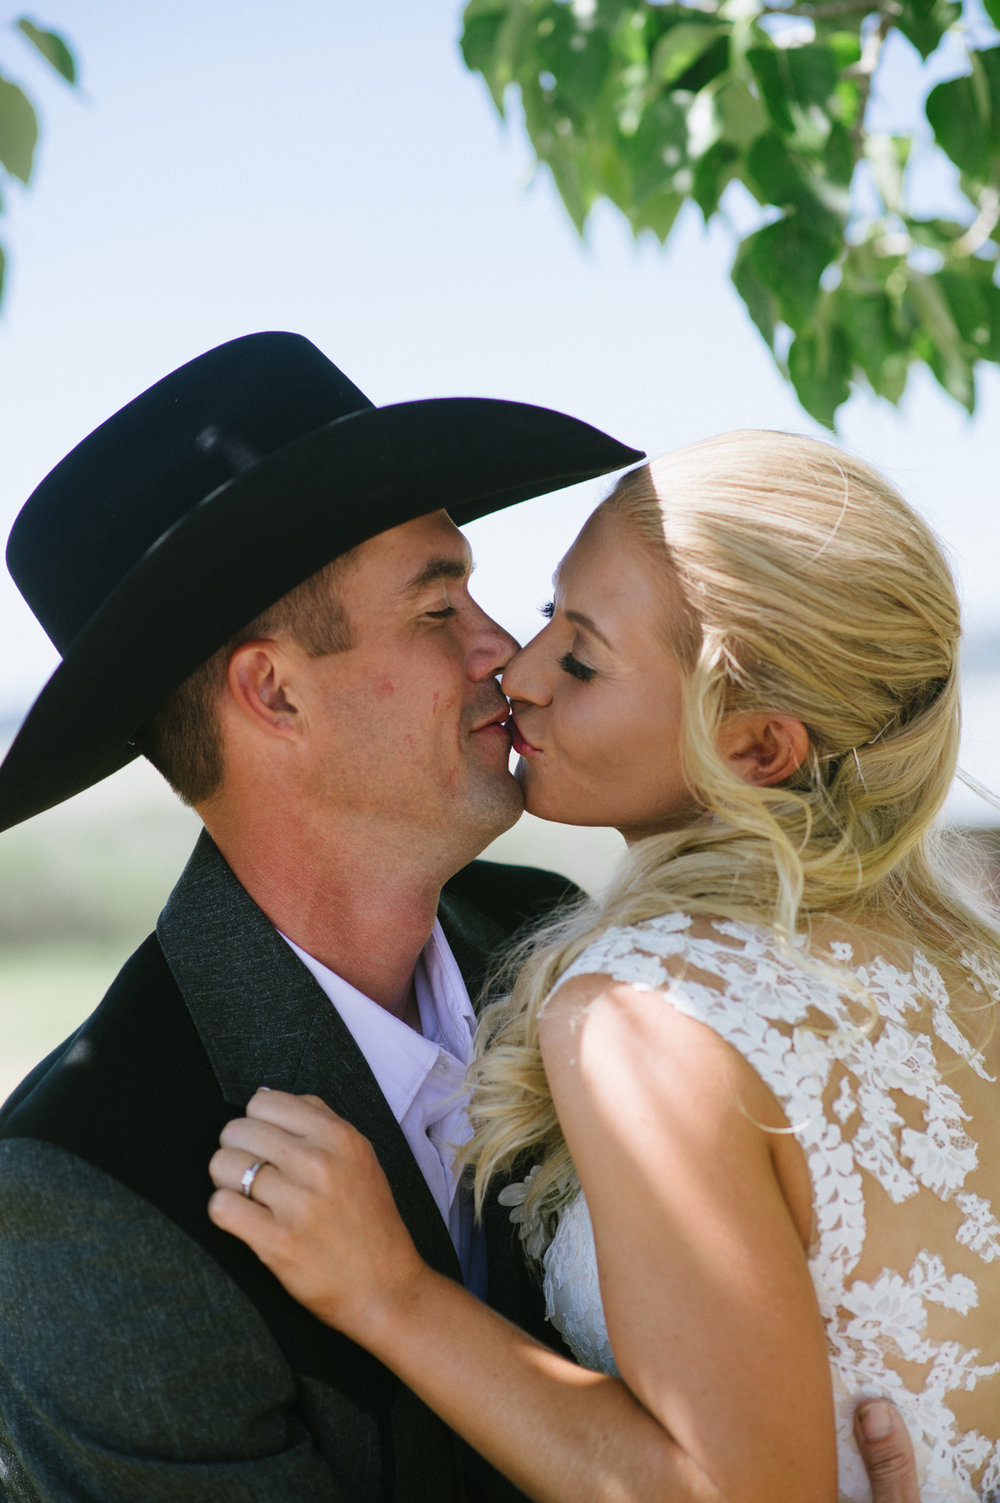 Erica Lind + Jeff Heim Wedding_Rustic Wedding_Montana Wedding_Kelsey Lane Photography-3936.jpg